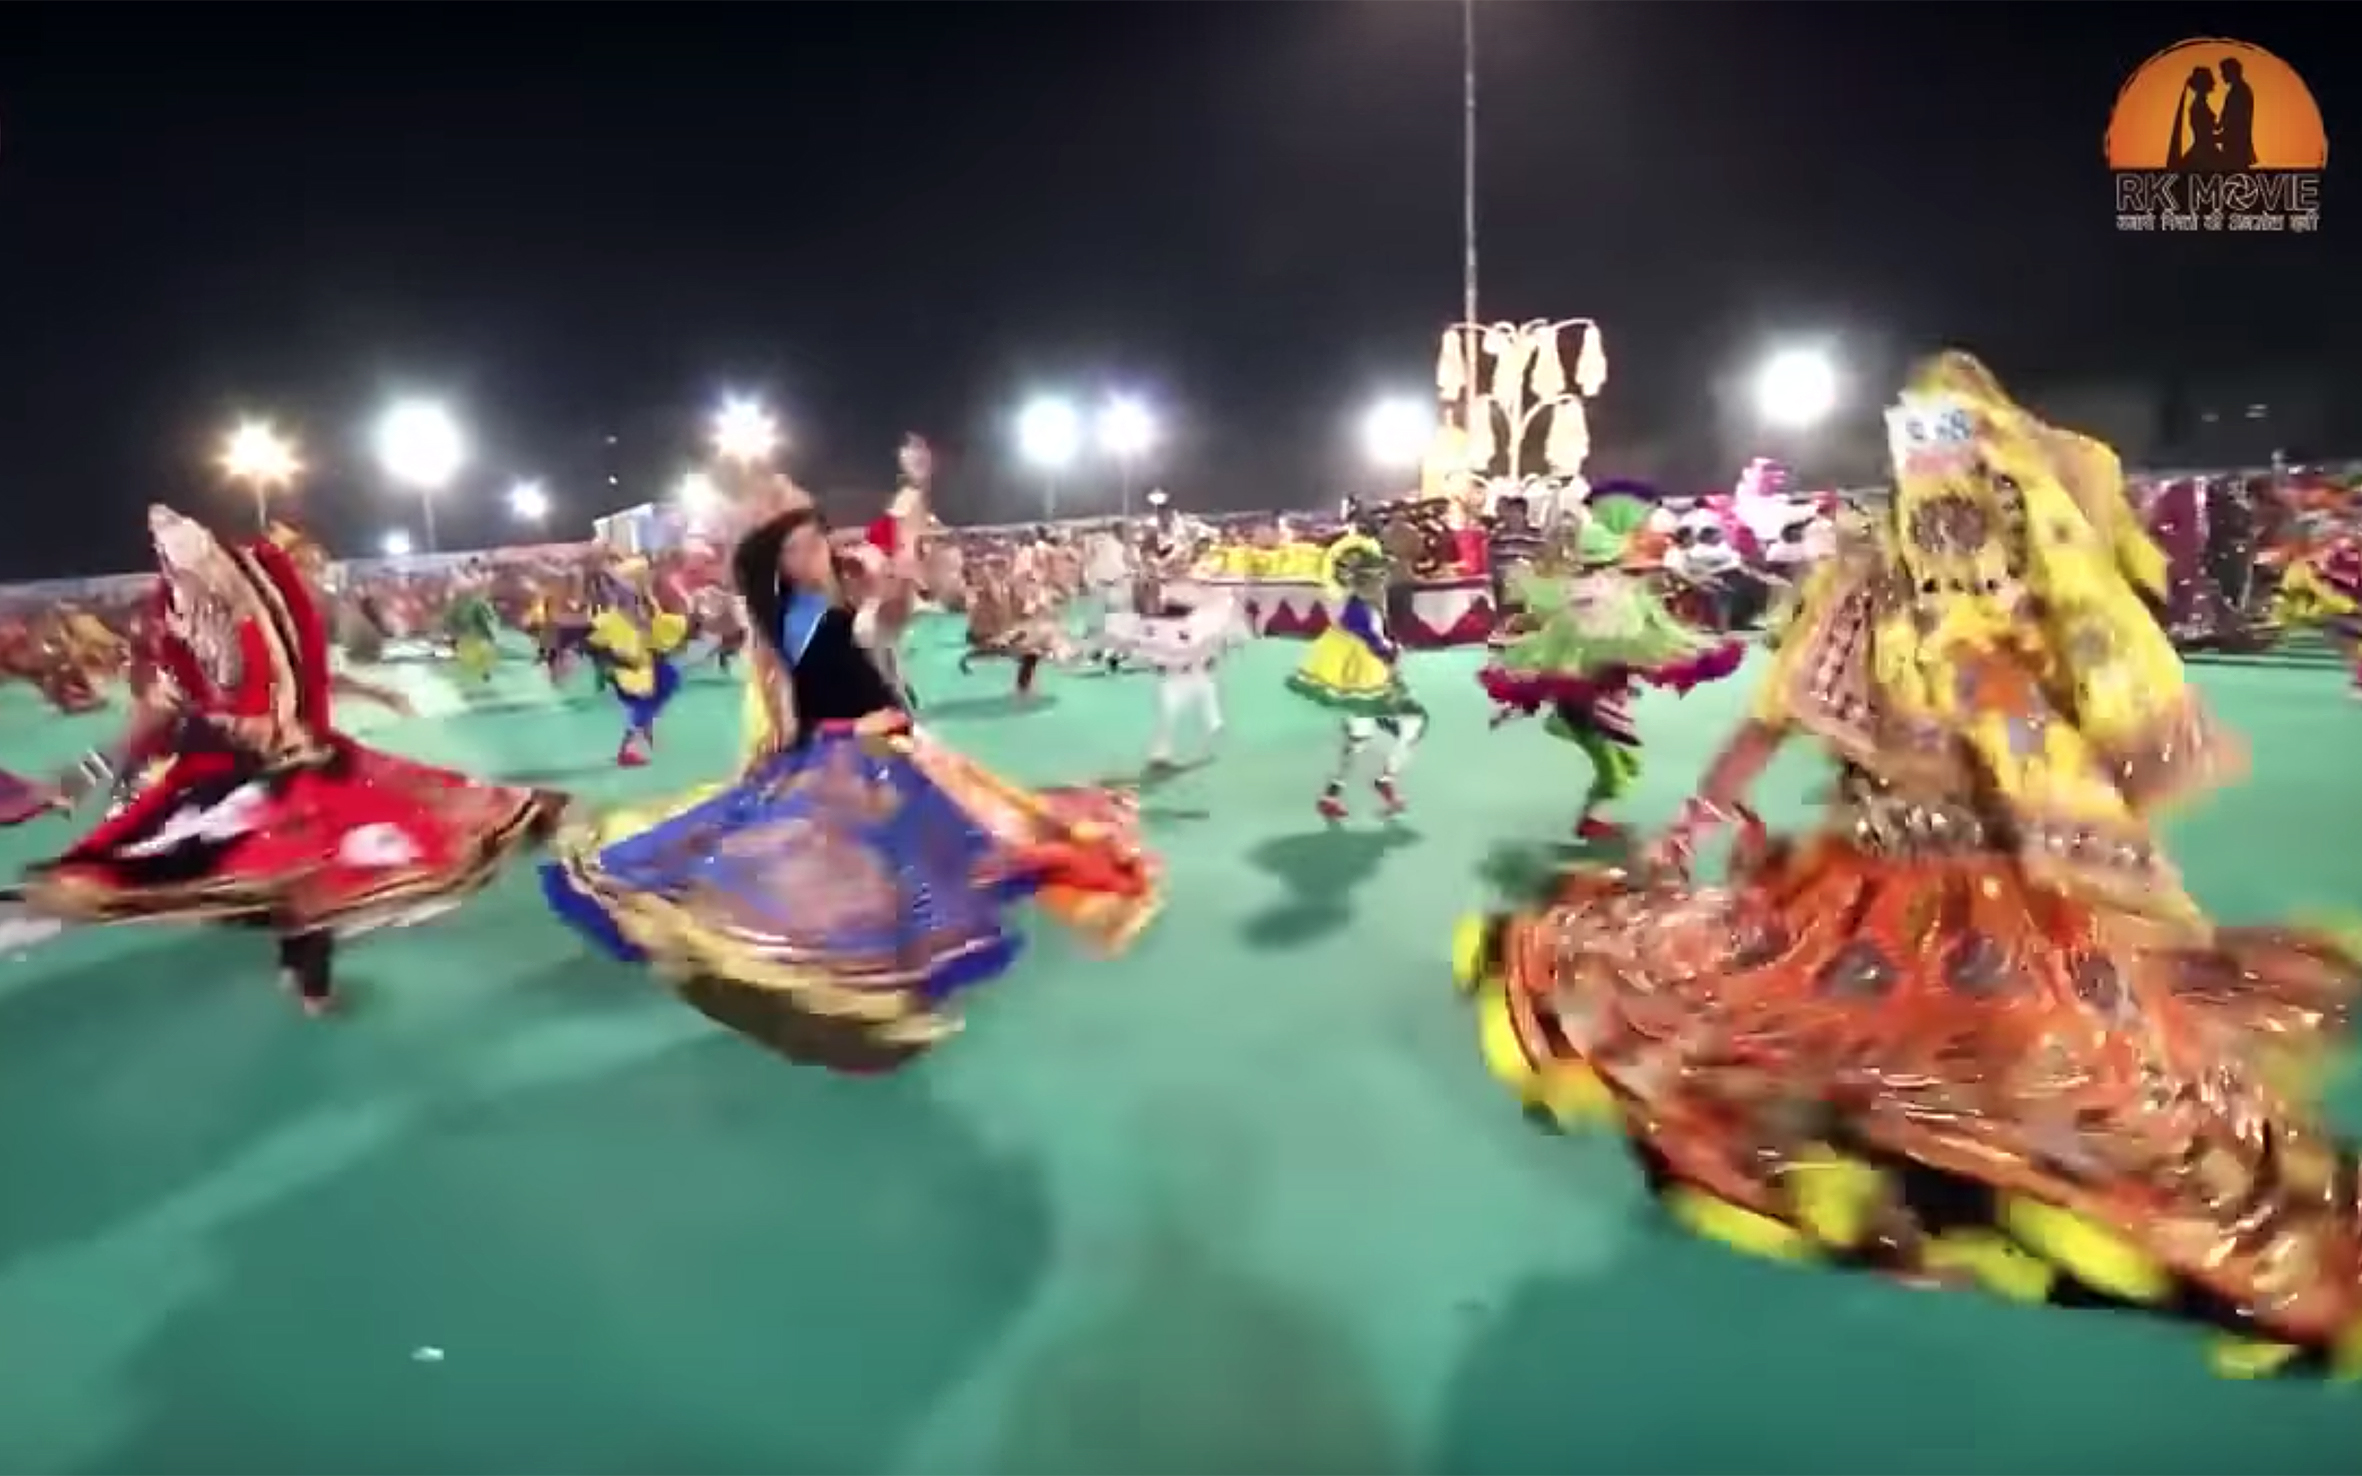 """317. GARBA / India - GARBA comes from the Sanskrit word for """"womb"""" and so implies """"gestation"""" or """"pregnancy"""" - life. Traditionally, the dance is performed around a clay lantern with a light inside, called a Garbha Deep ("""